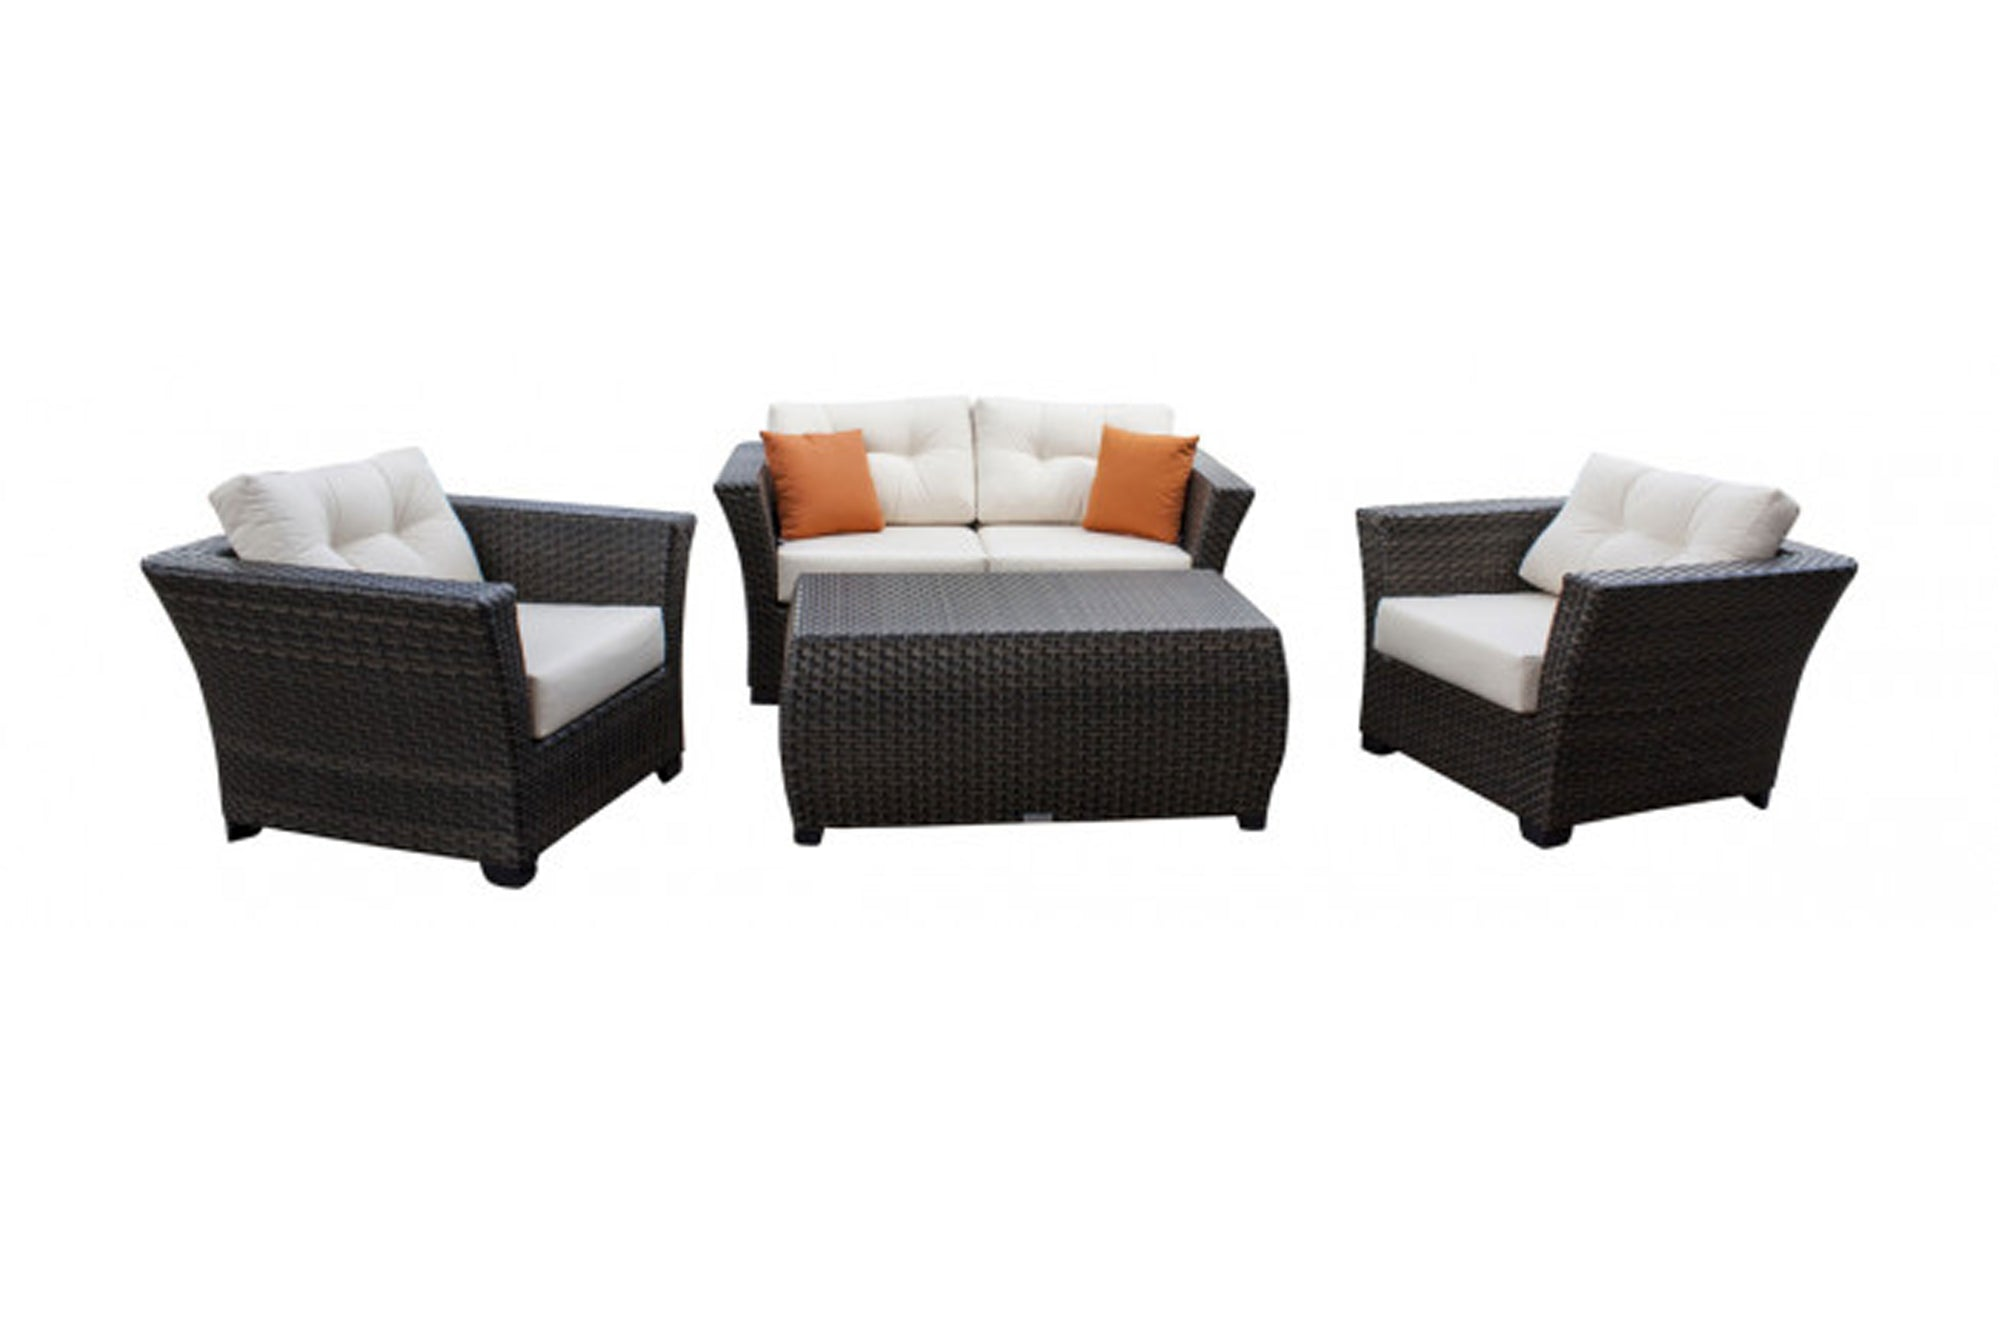 Samoa 4 PC Seating Set w/off-white cushions